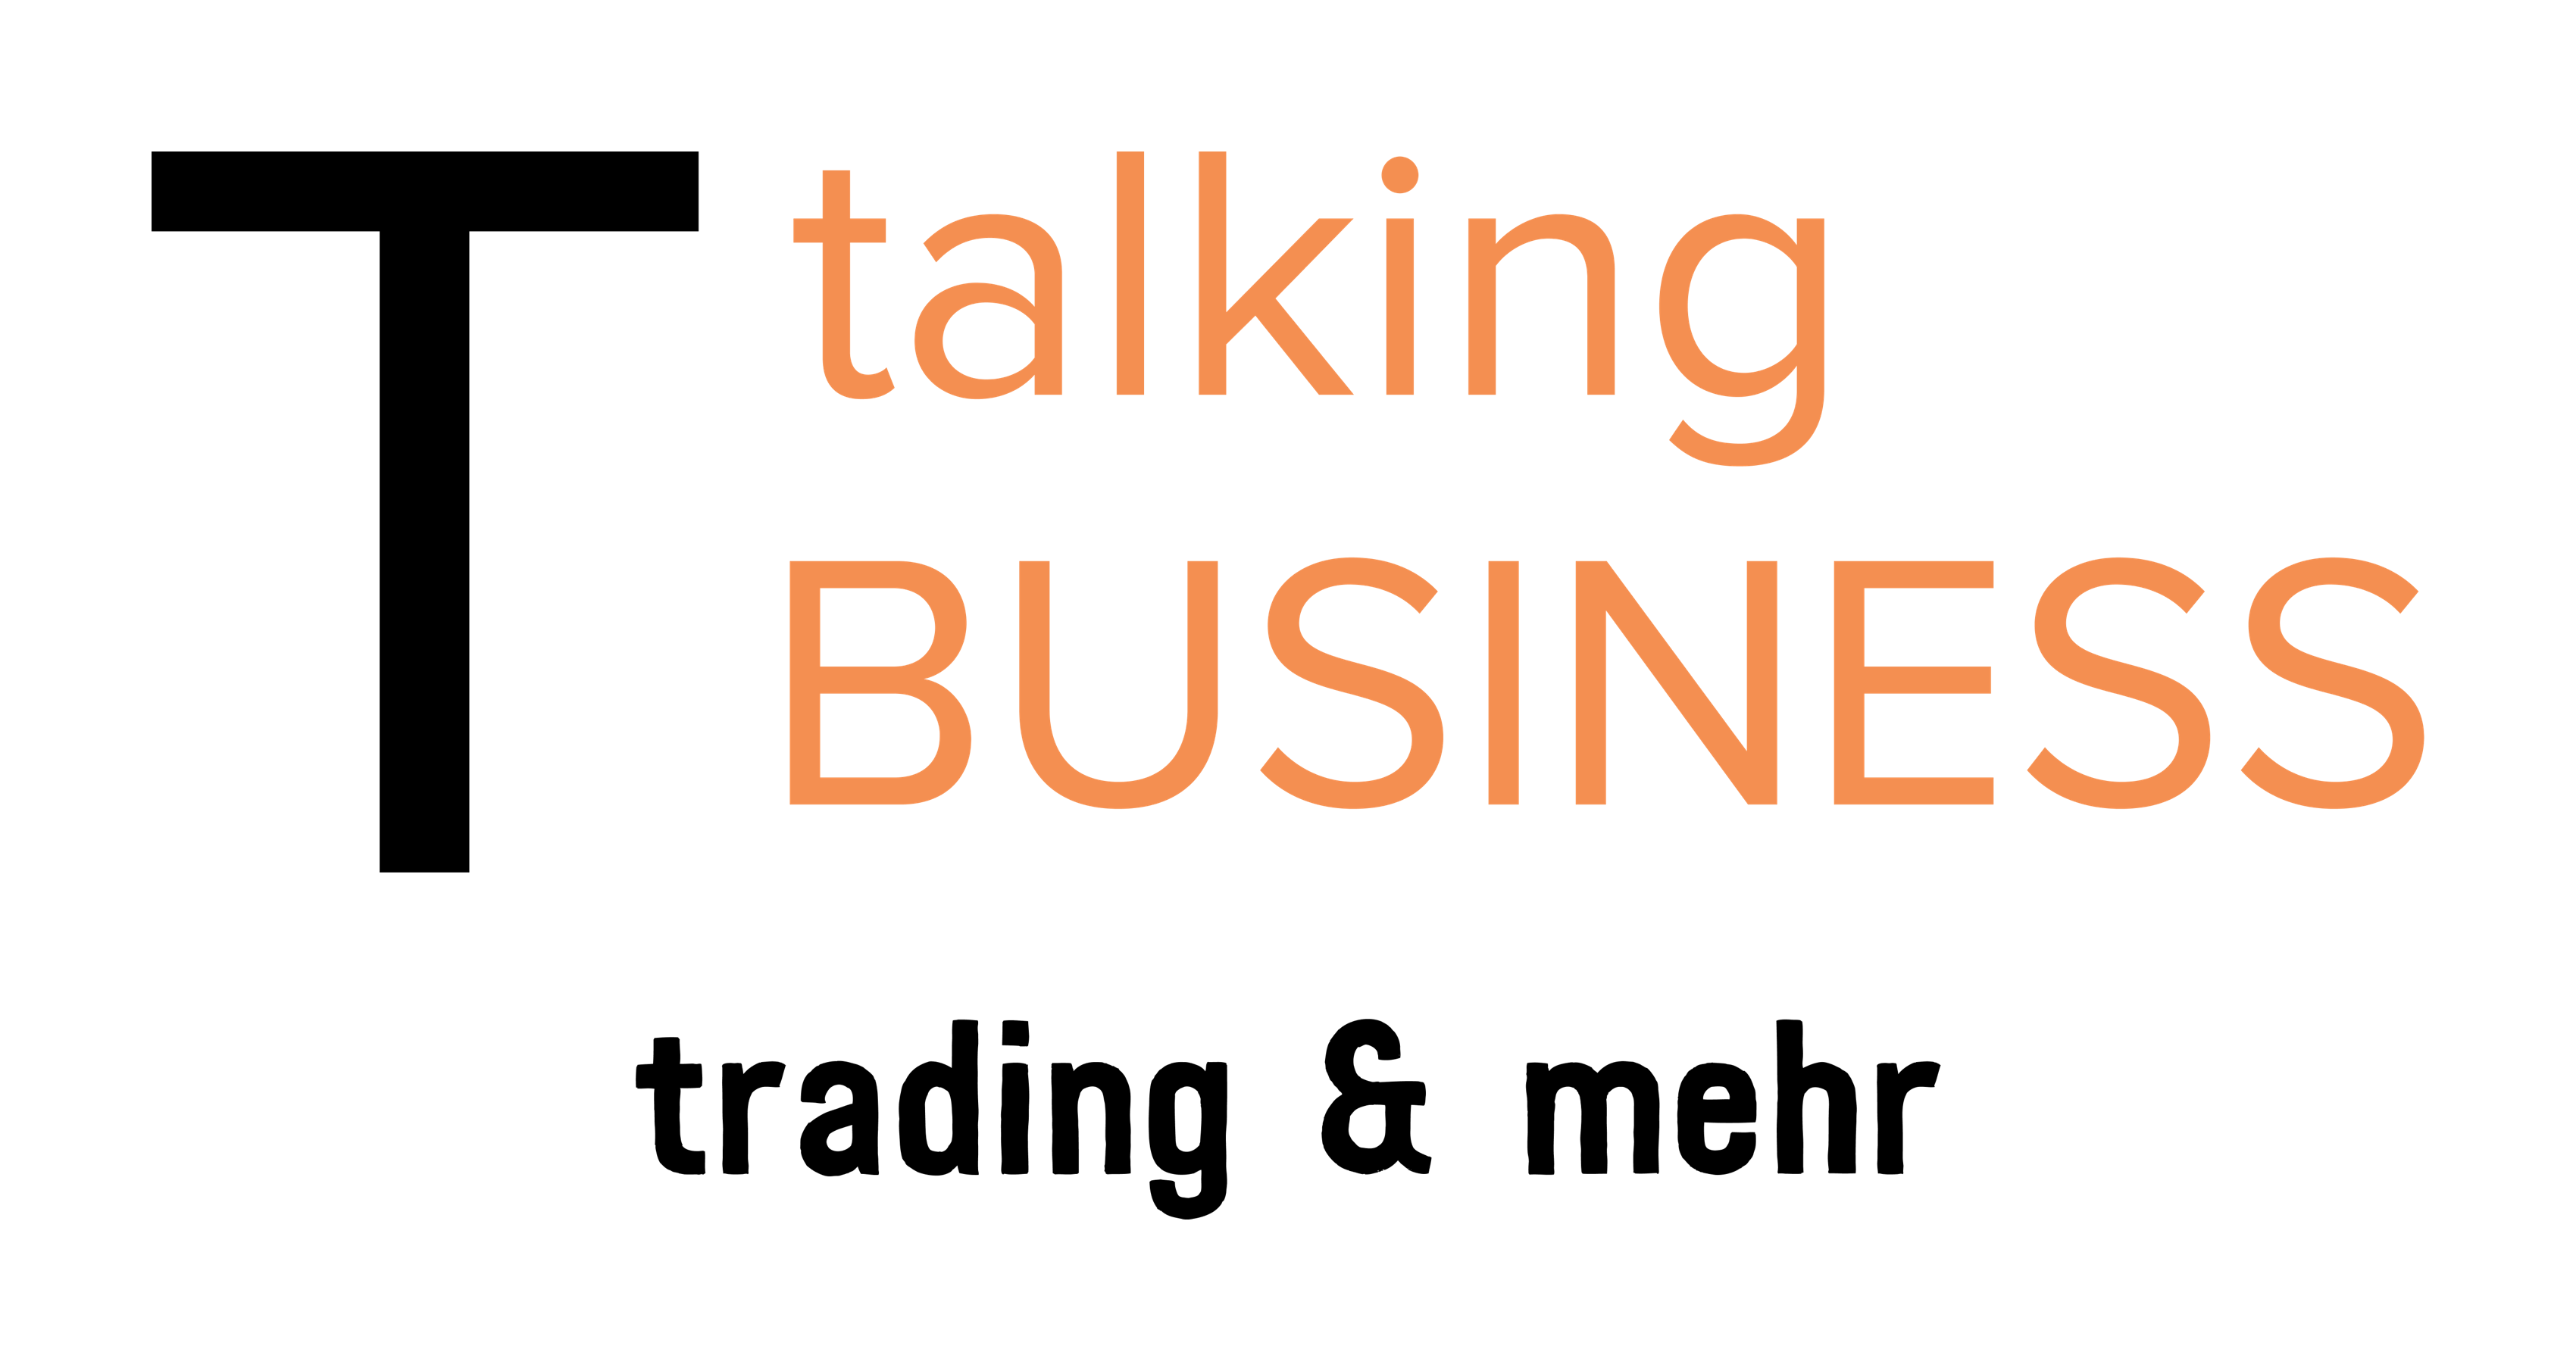 talkingBusiness - trading & mehr